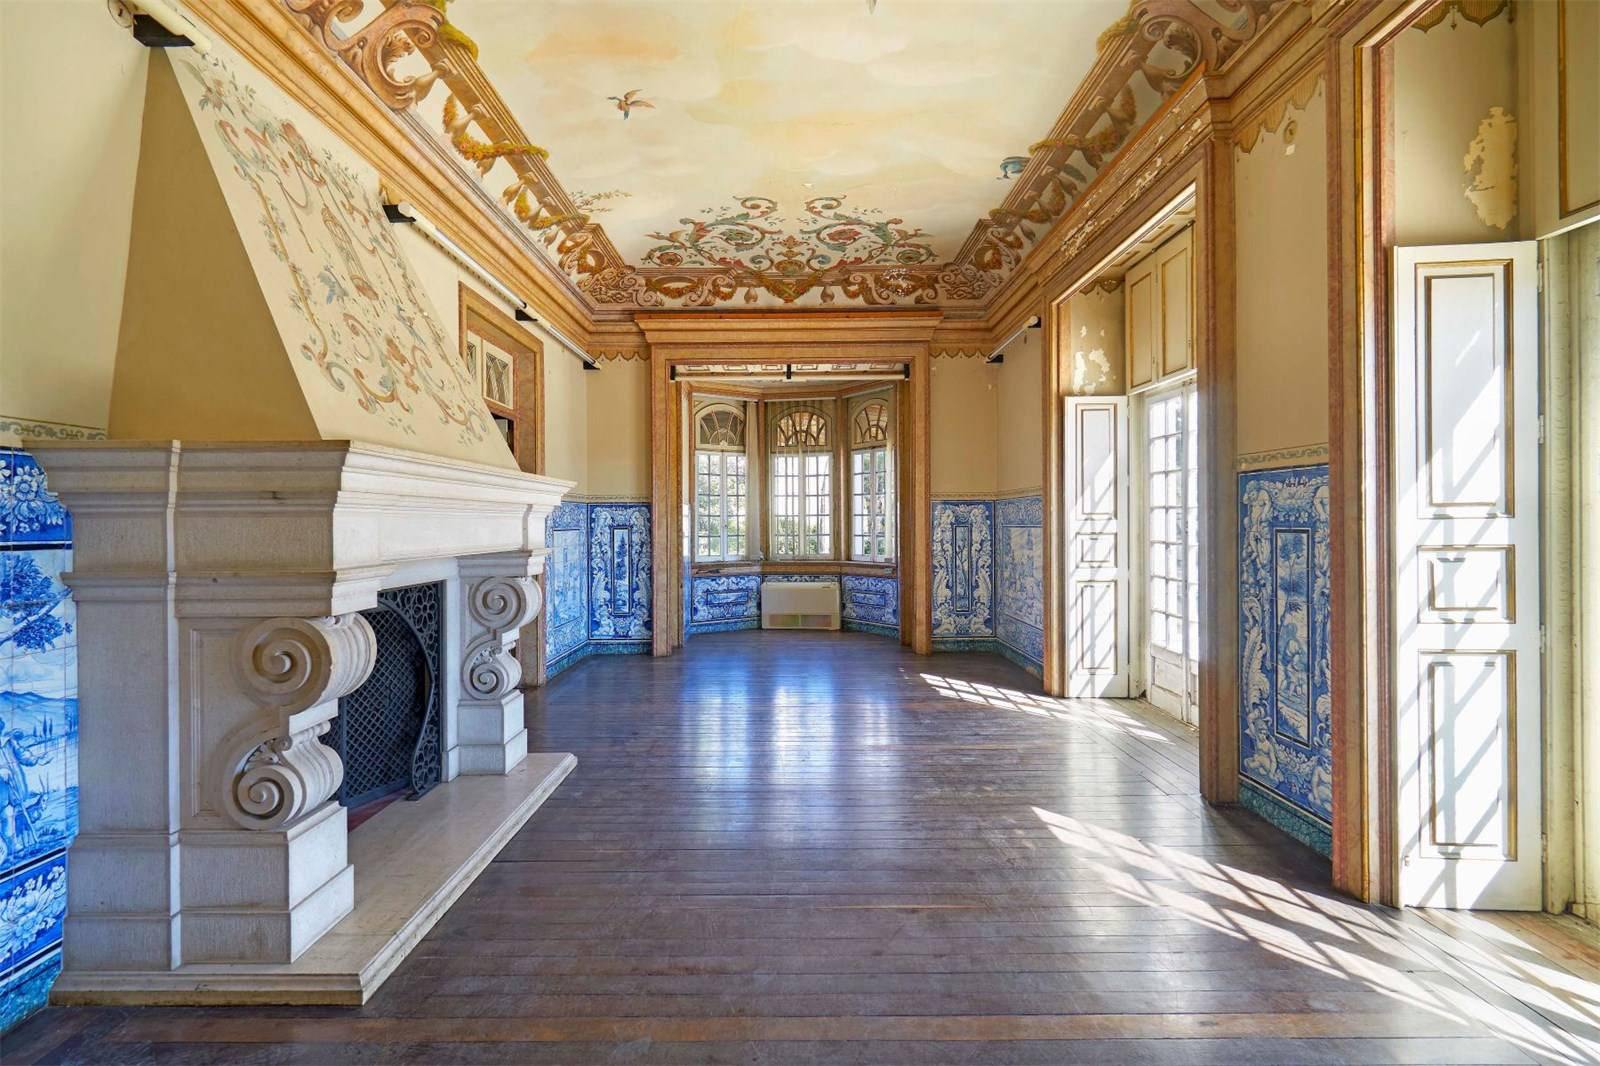 5 of our favourite Lisbon properties on the market right now: Lisbon palace